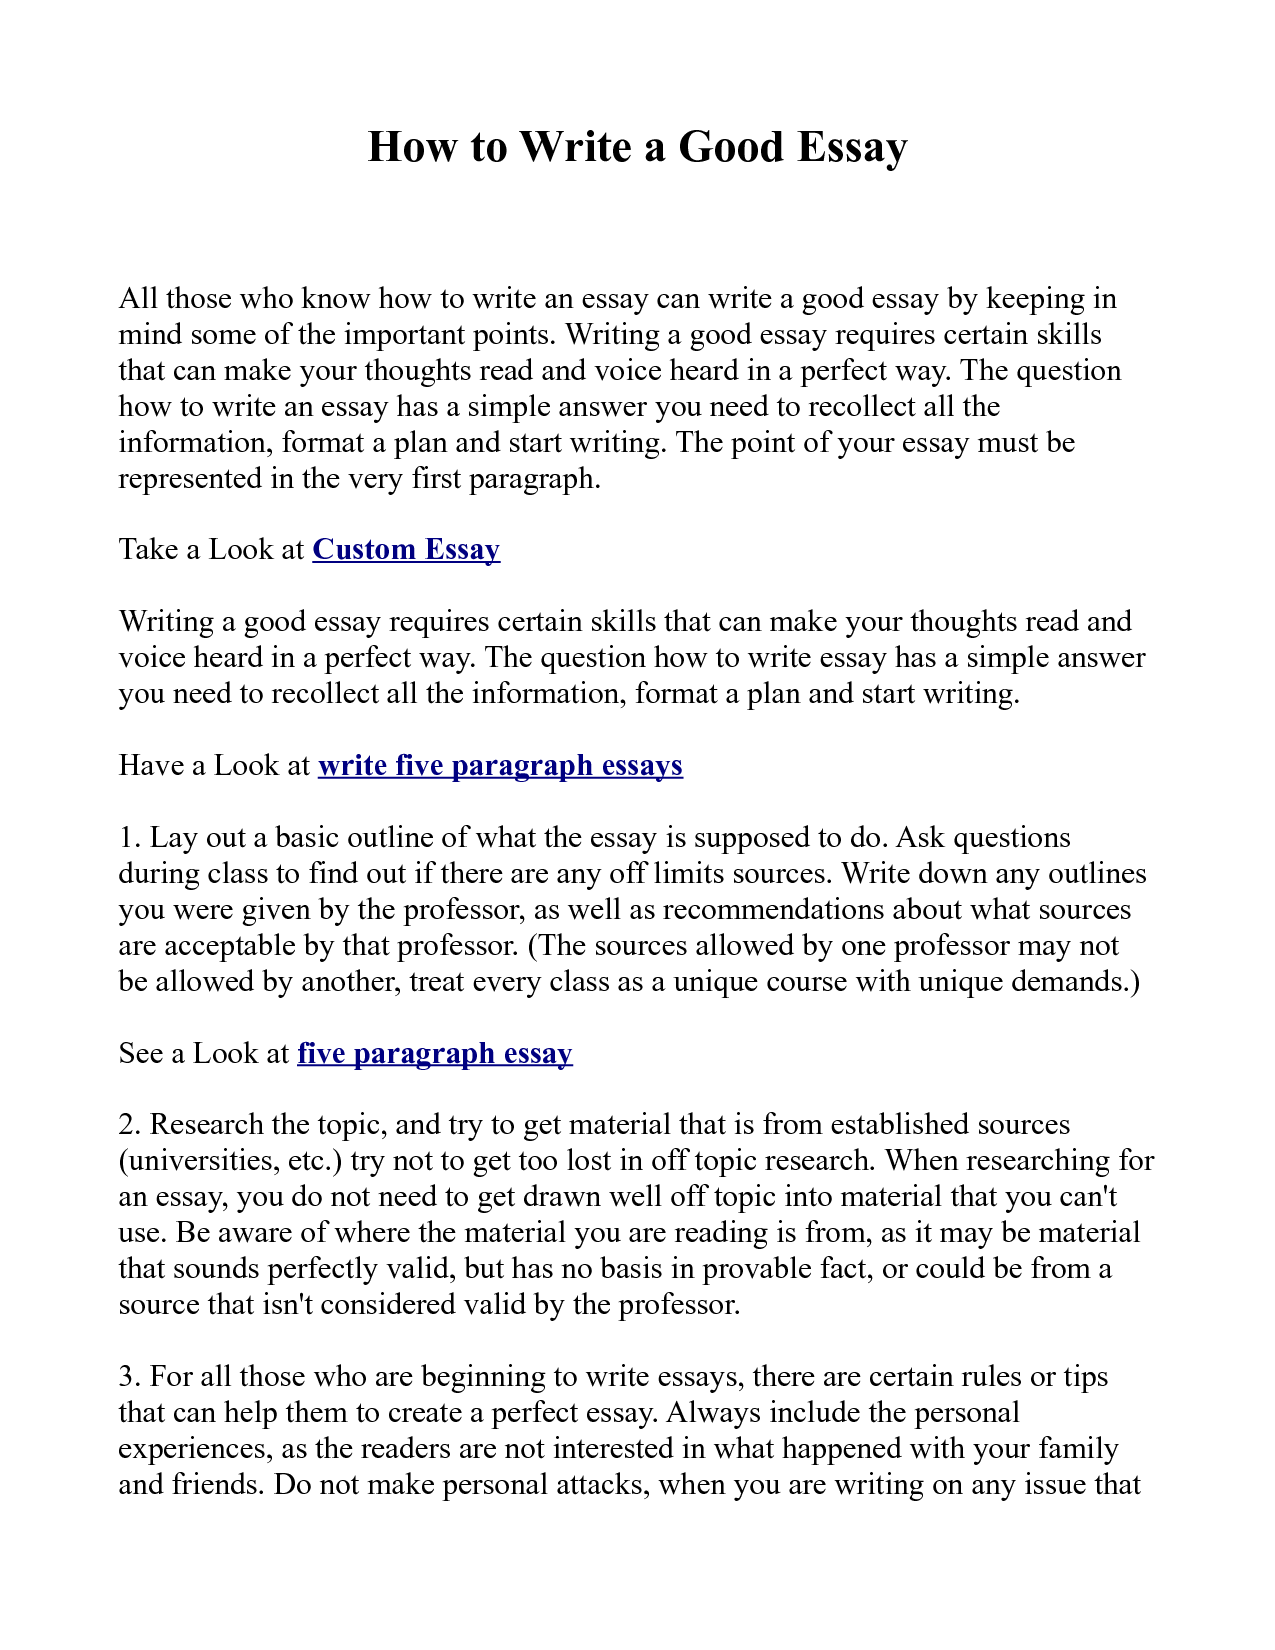 pointers on how to write a good essay 8 tips for crafting your best college essay  had to describe why she would make a good reed college student for that school's essay  for more on how to write a.